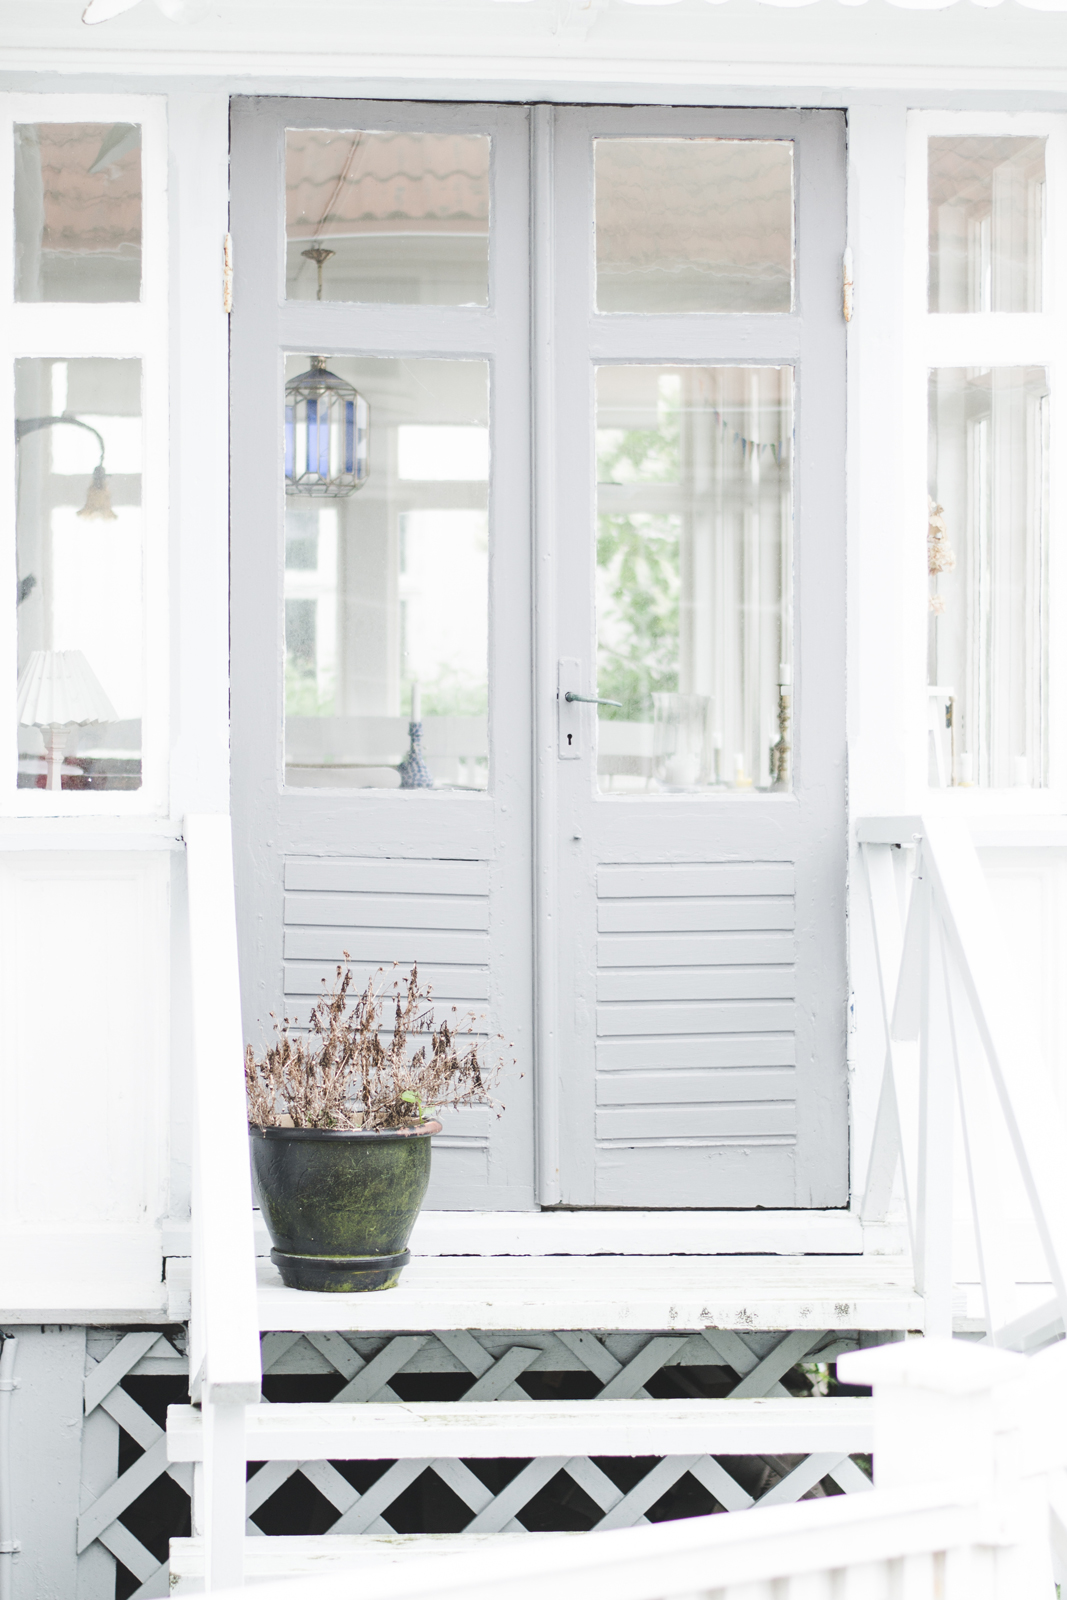 Gothenburg-Archipelago-Styrso-Tangen-Grey-Door